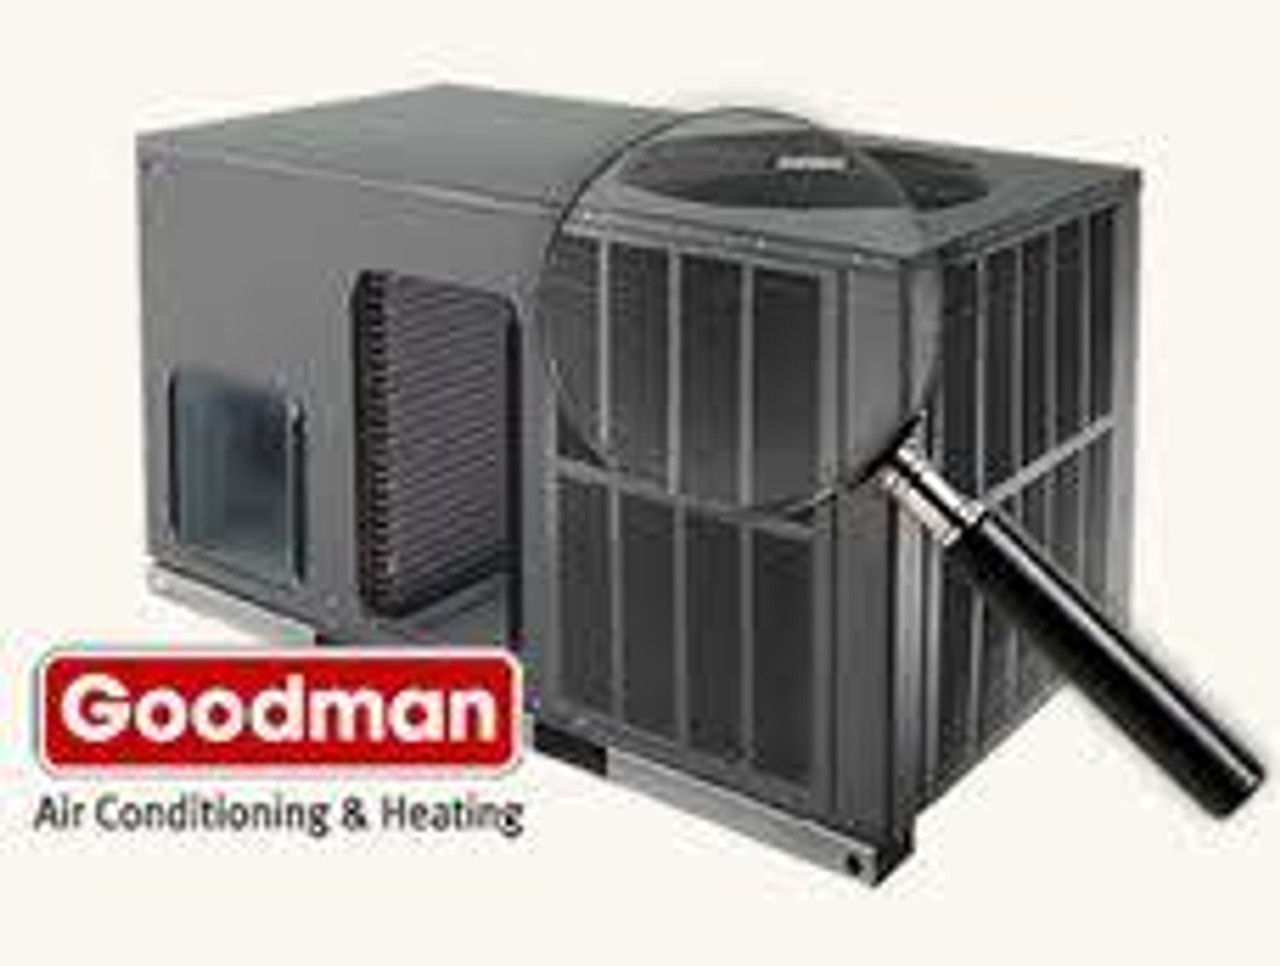 Goodman 4 Ton 14 Seer Gpc1448h41 Package Air Conditioner Budget Air Supply